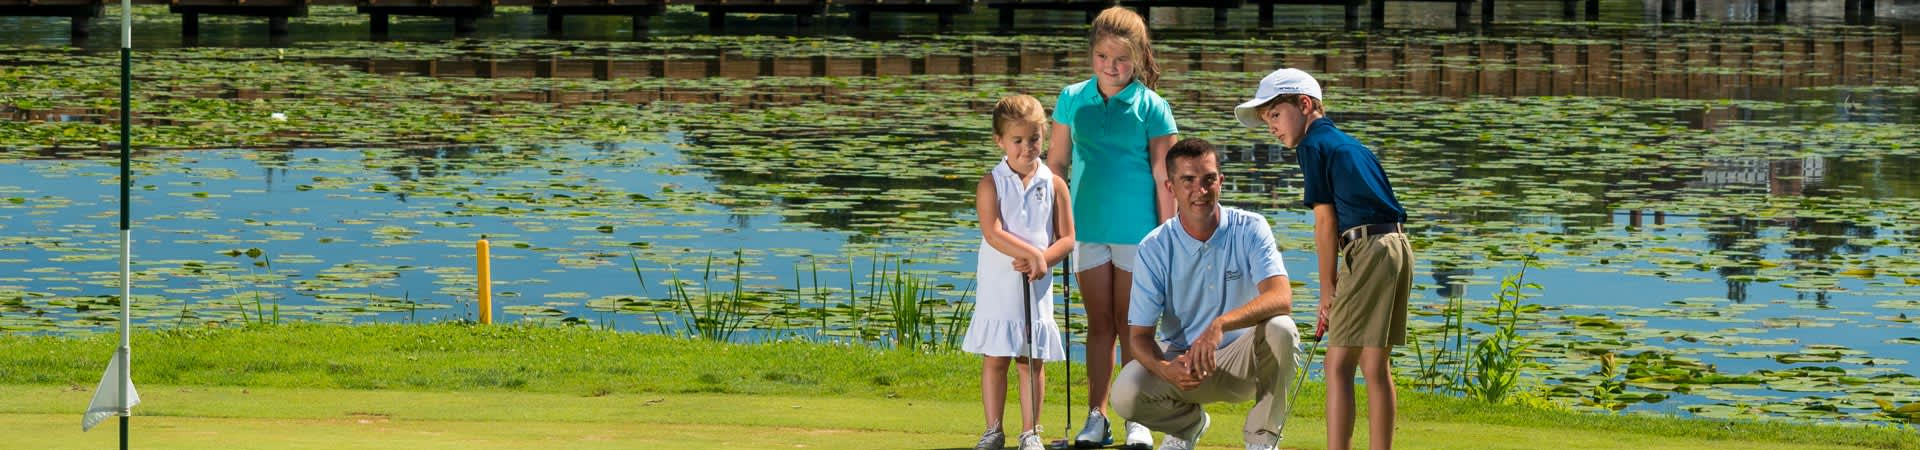 Golf Clinics in Cooperstown New York